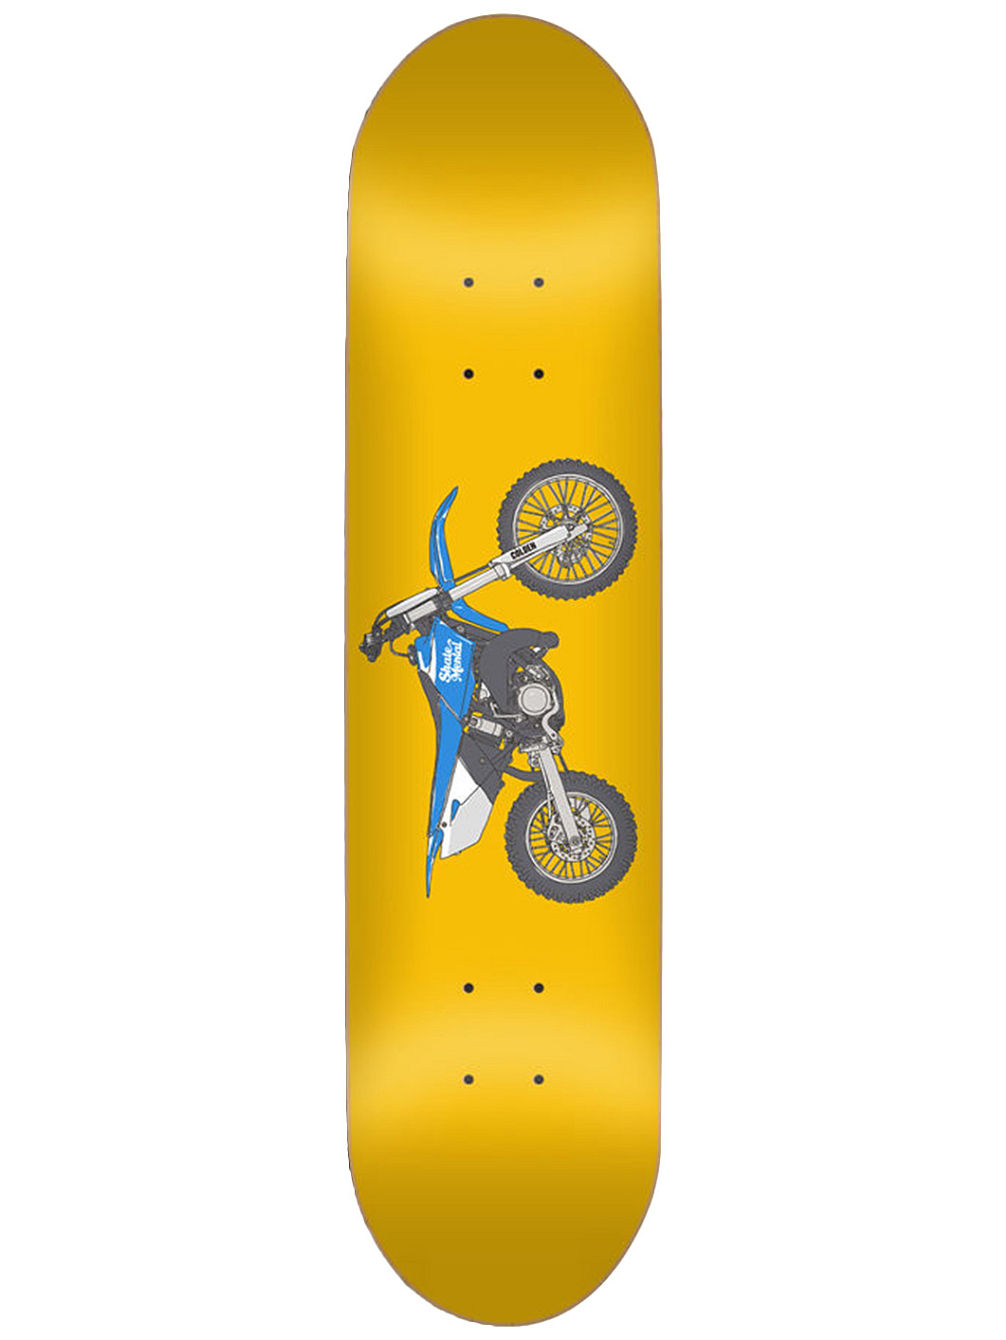 "Colden Dirtbike 8.25"" Skate Deck"